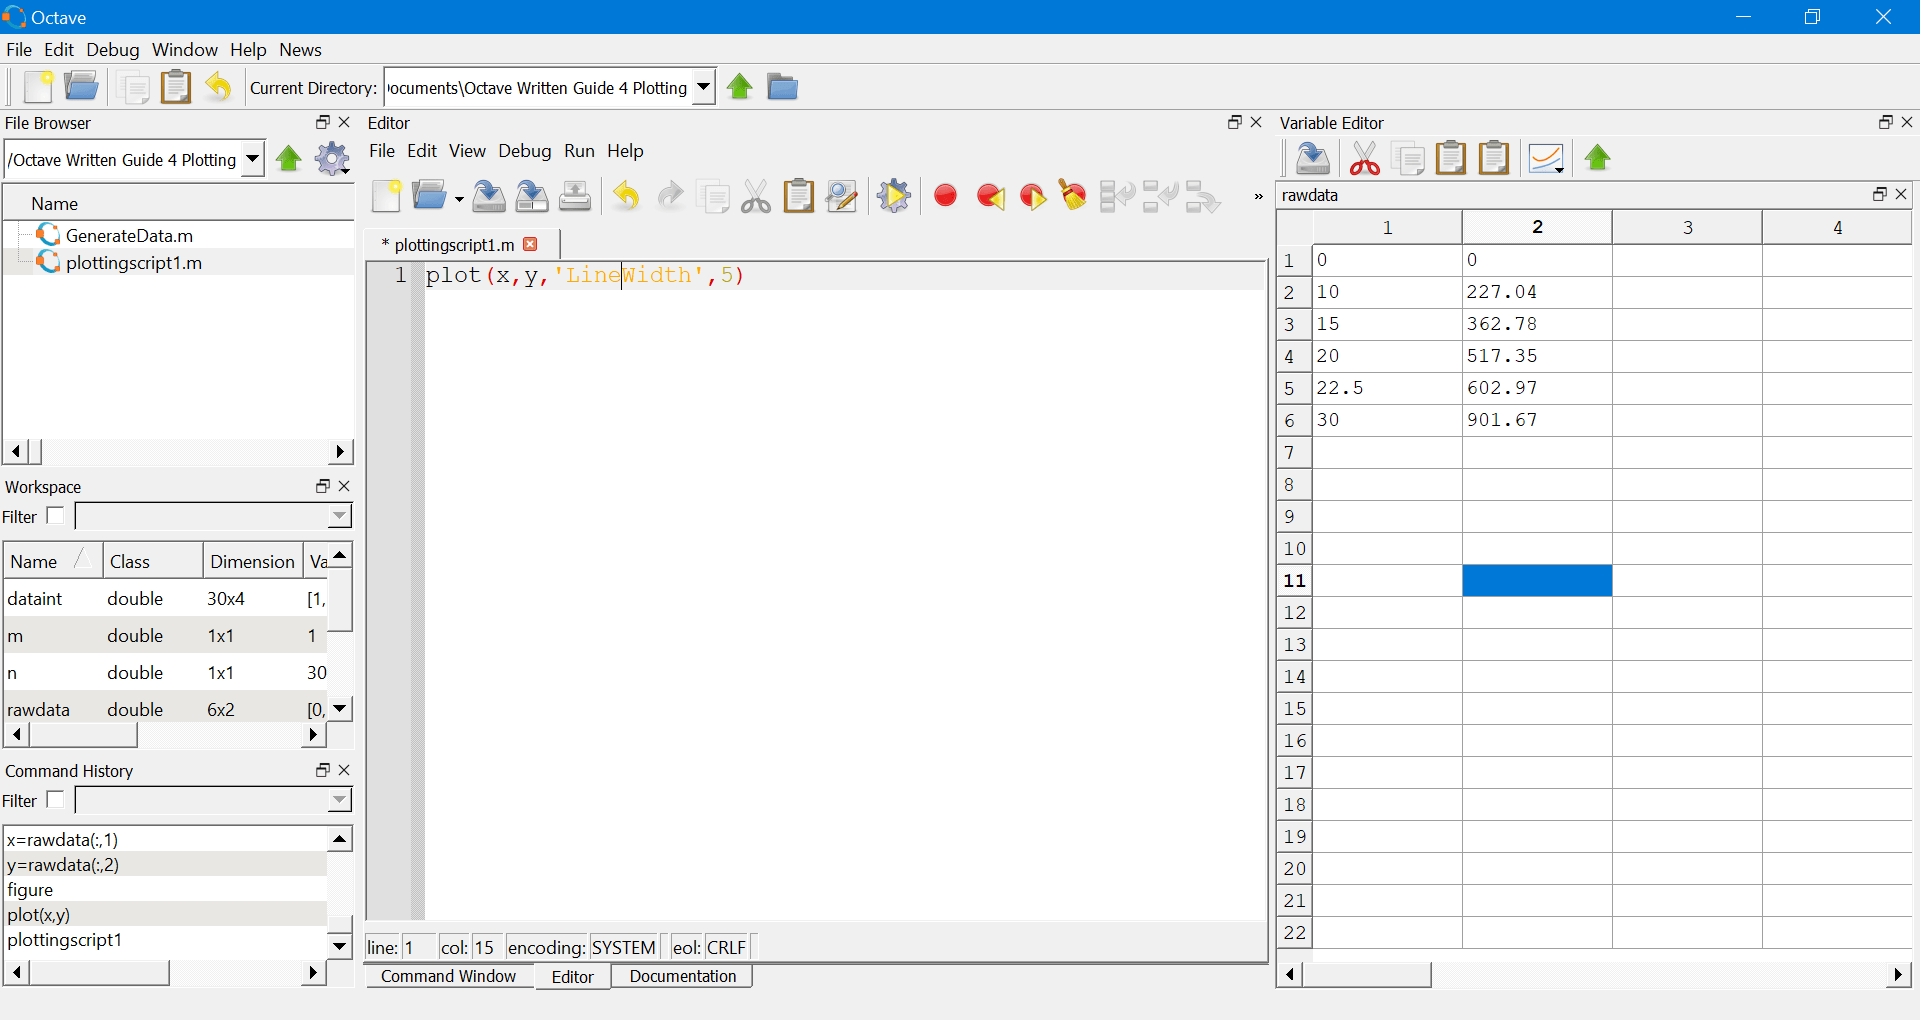 Plotting 2D Figures in Octave/MATLAB - Windows 10 Installation Guides